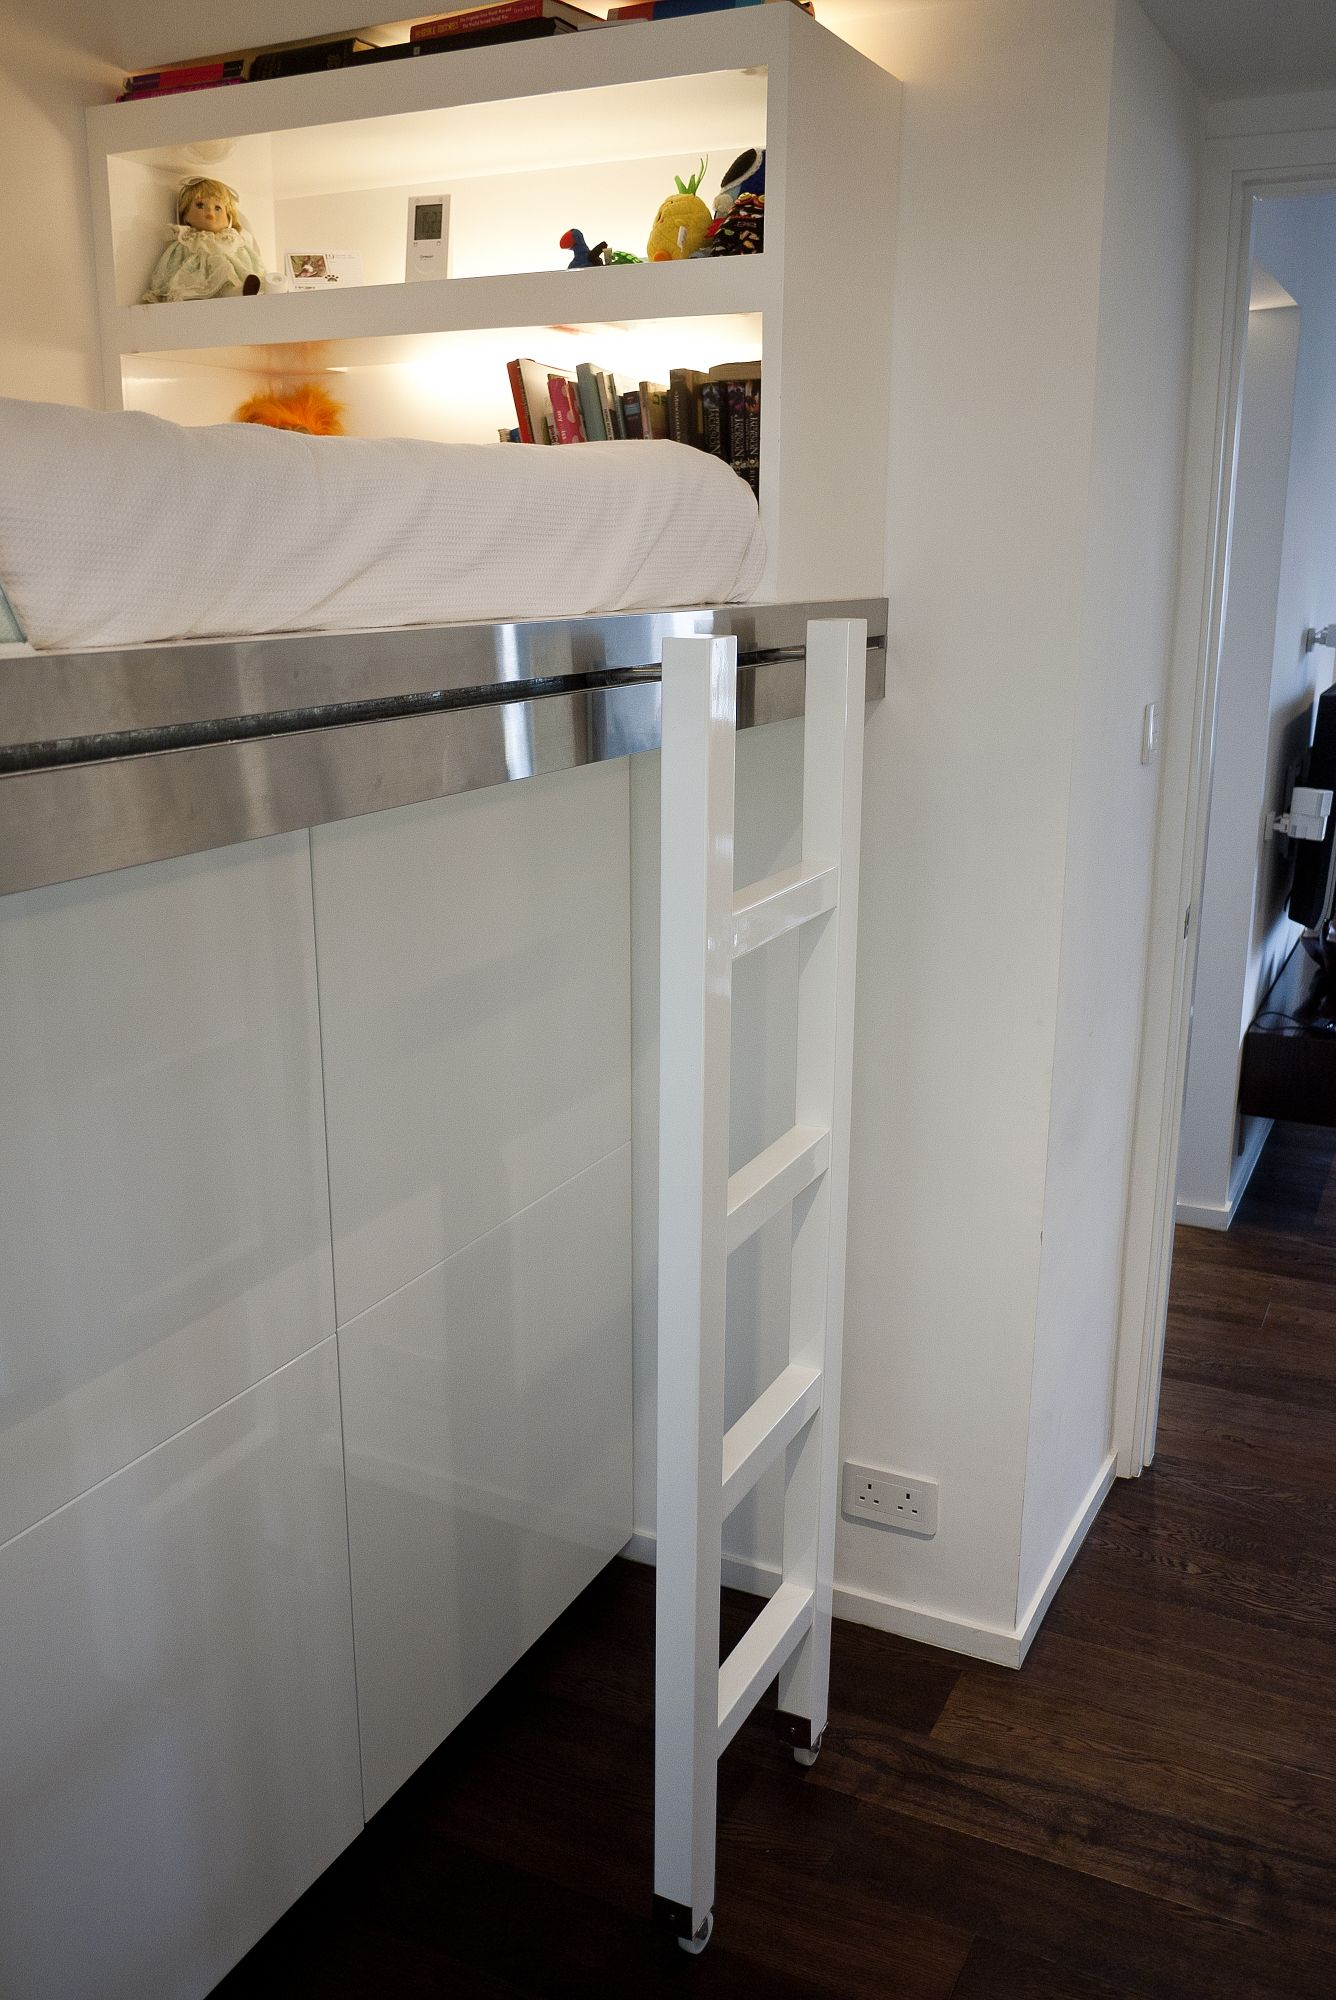 Small Box Room Cabin Bed For Grandma: Bookcase & Cabin Bed. Ladder Can Roll Across To Give